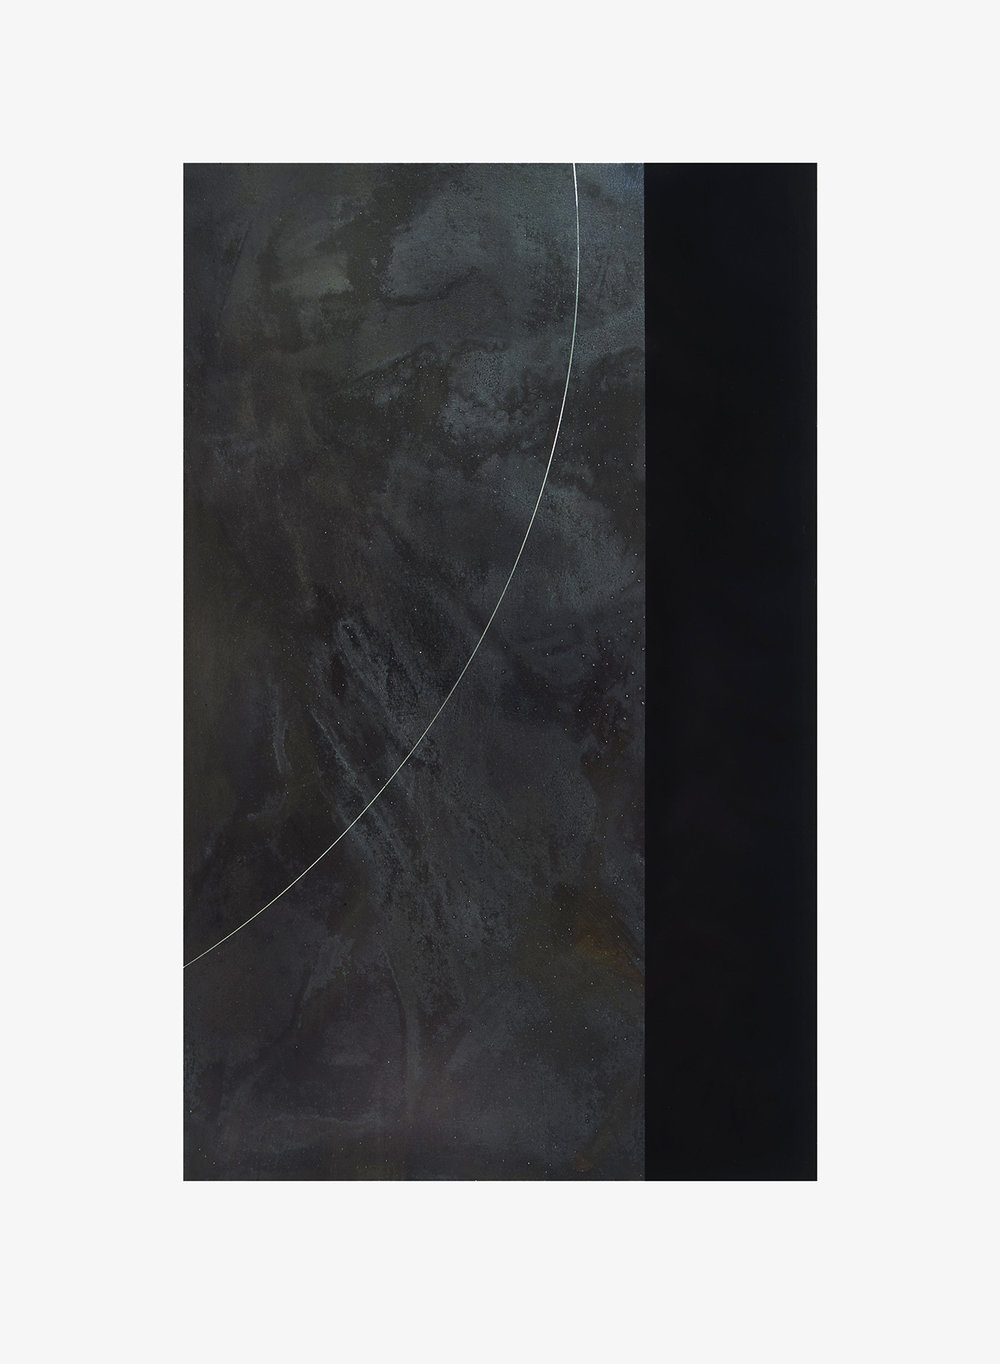 DRIFT (I)  2002  carbon deposit, oxidised zinc and graphite  84.2 x 65.3 cm